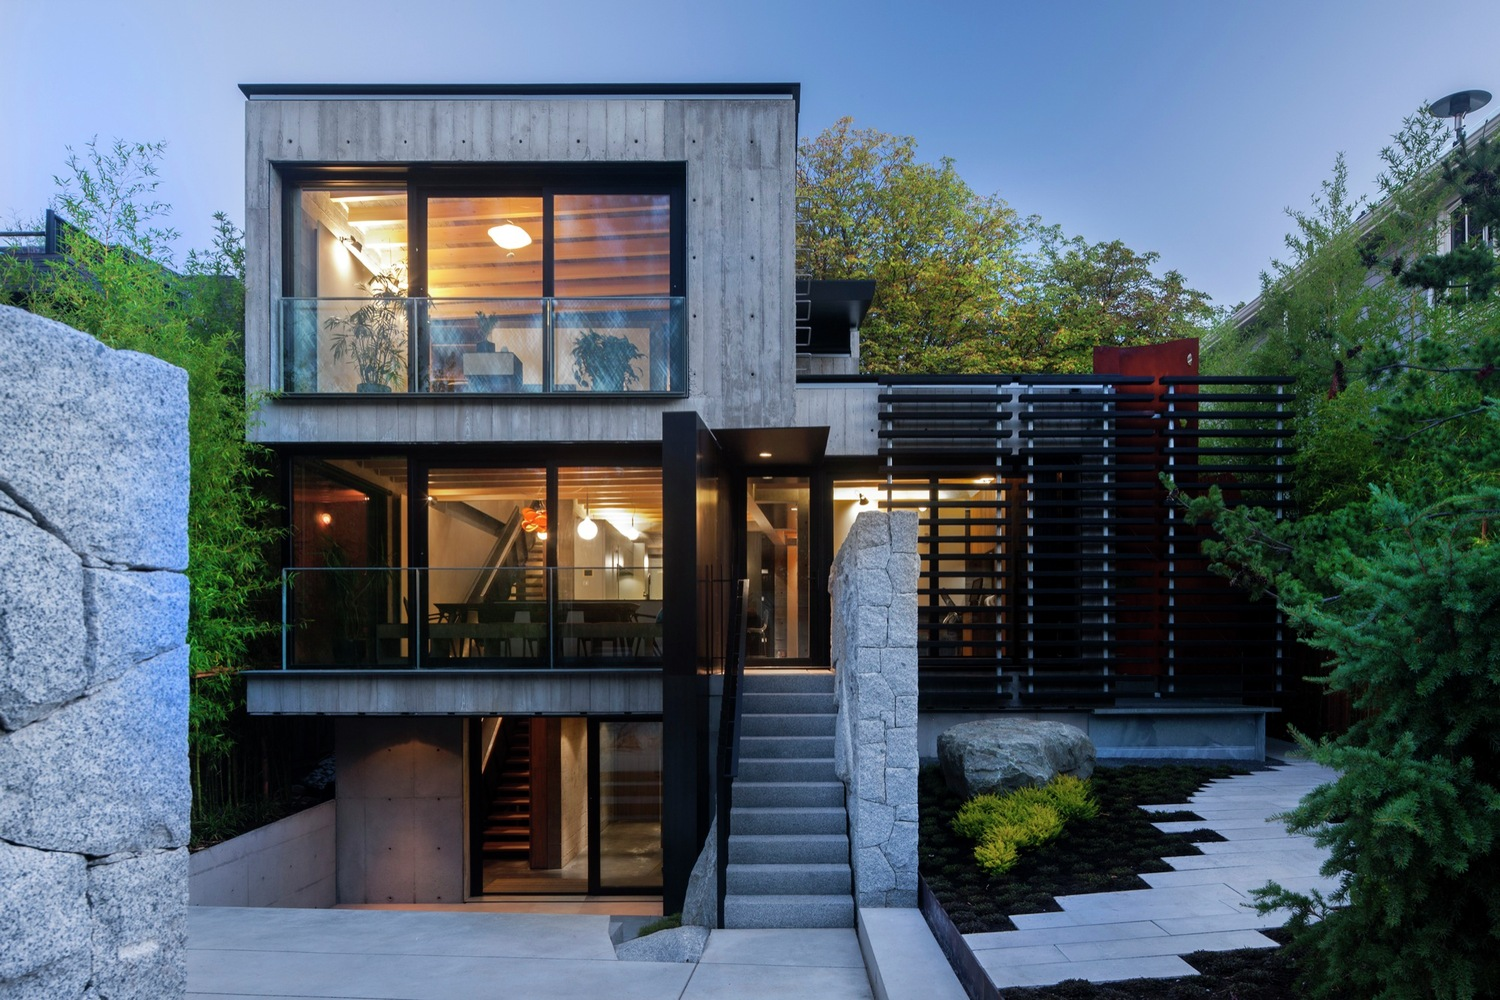 Cloister house by measured architecture in vancouver canada for Home designs vancouver